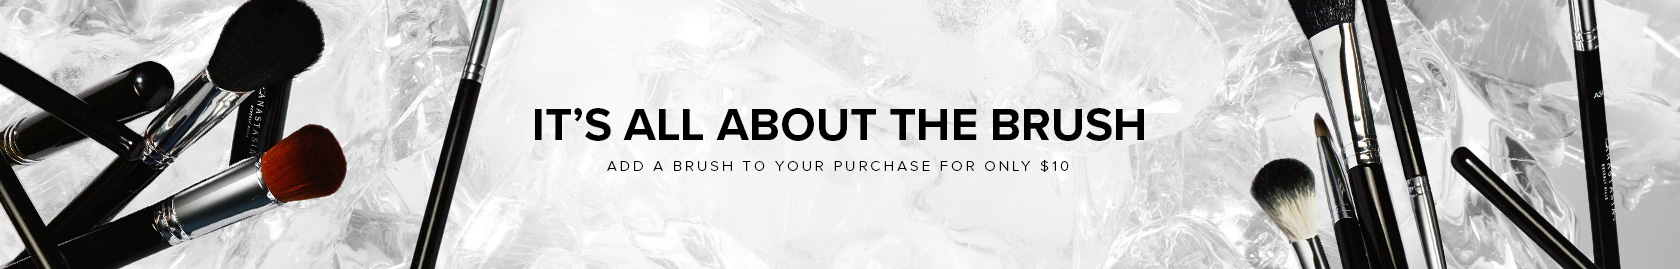 It's all about the brush - add a brush to your purchase for $10